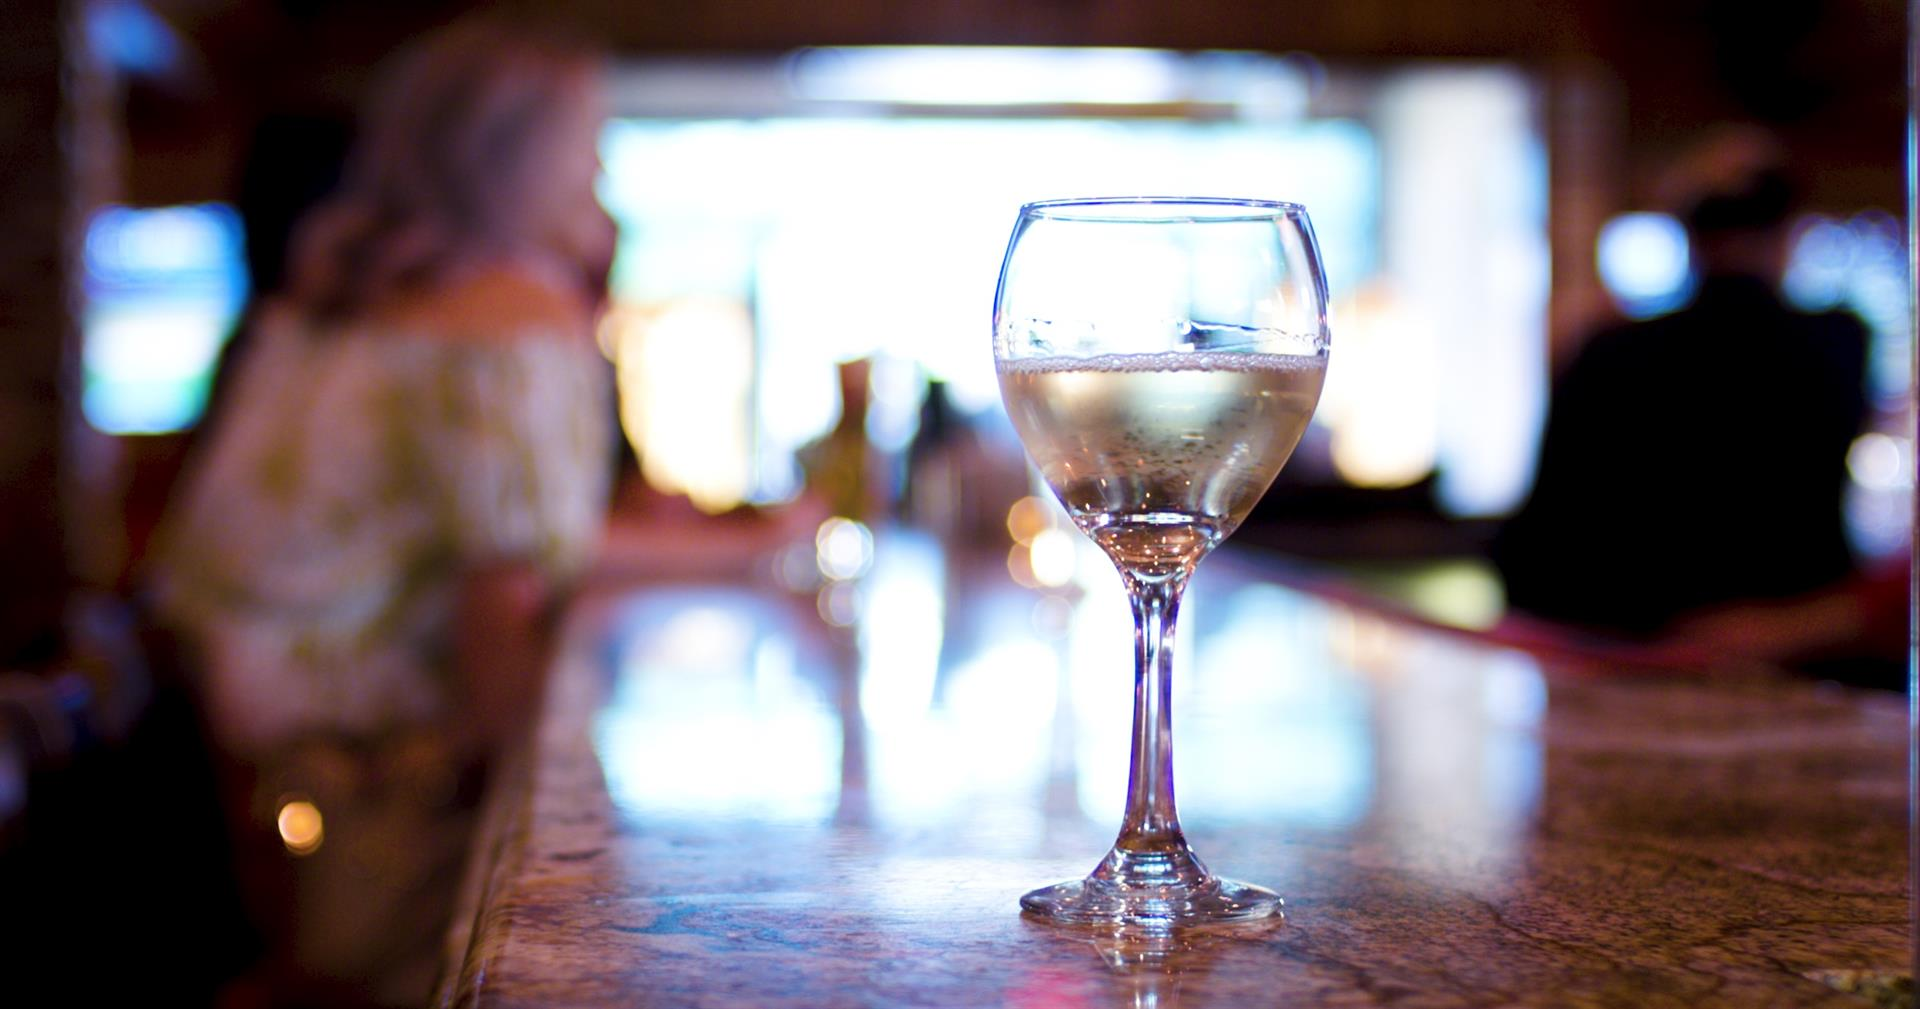 glass of white wine on the bar counter